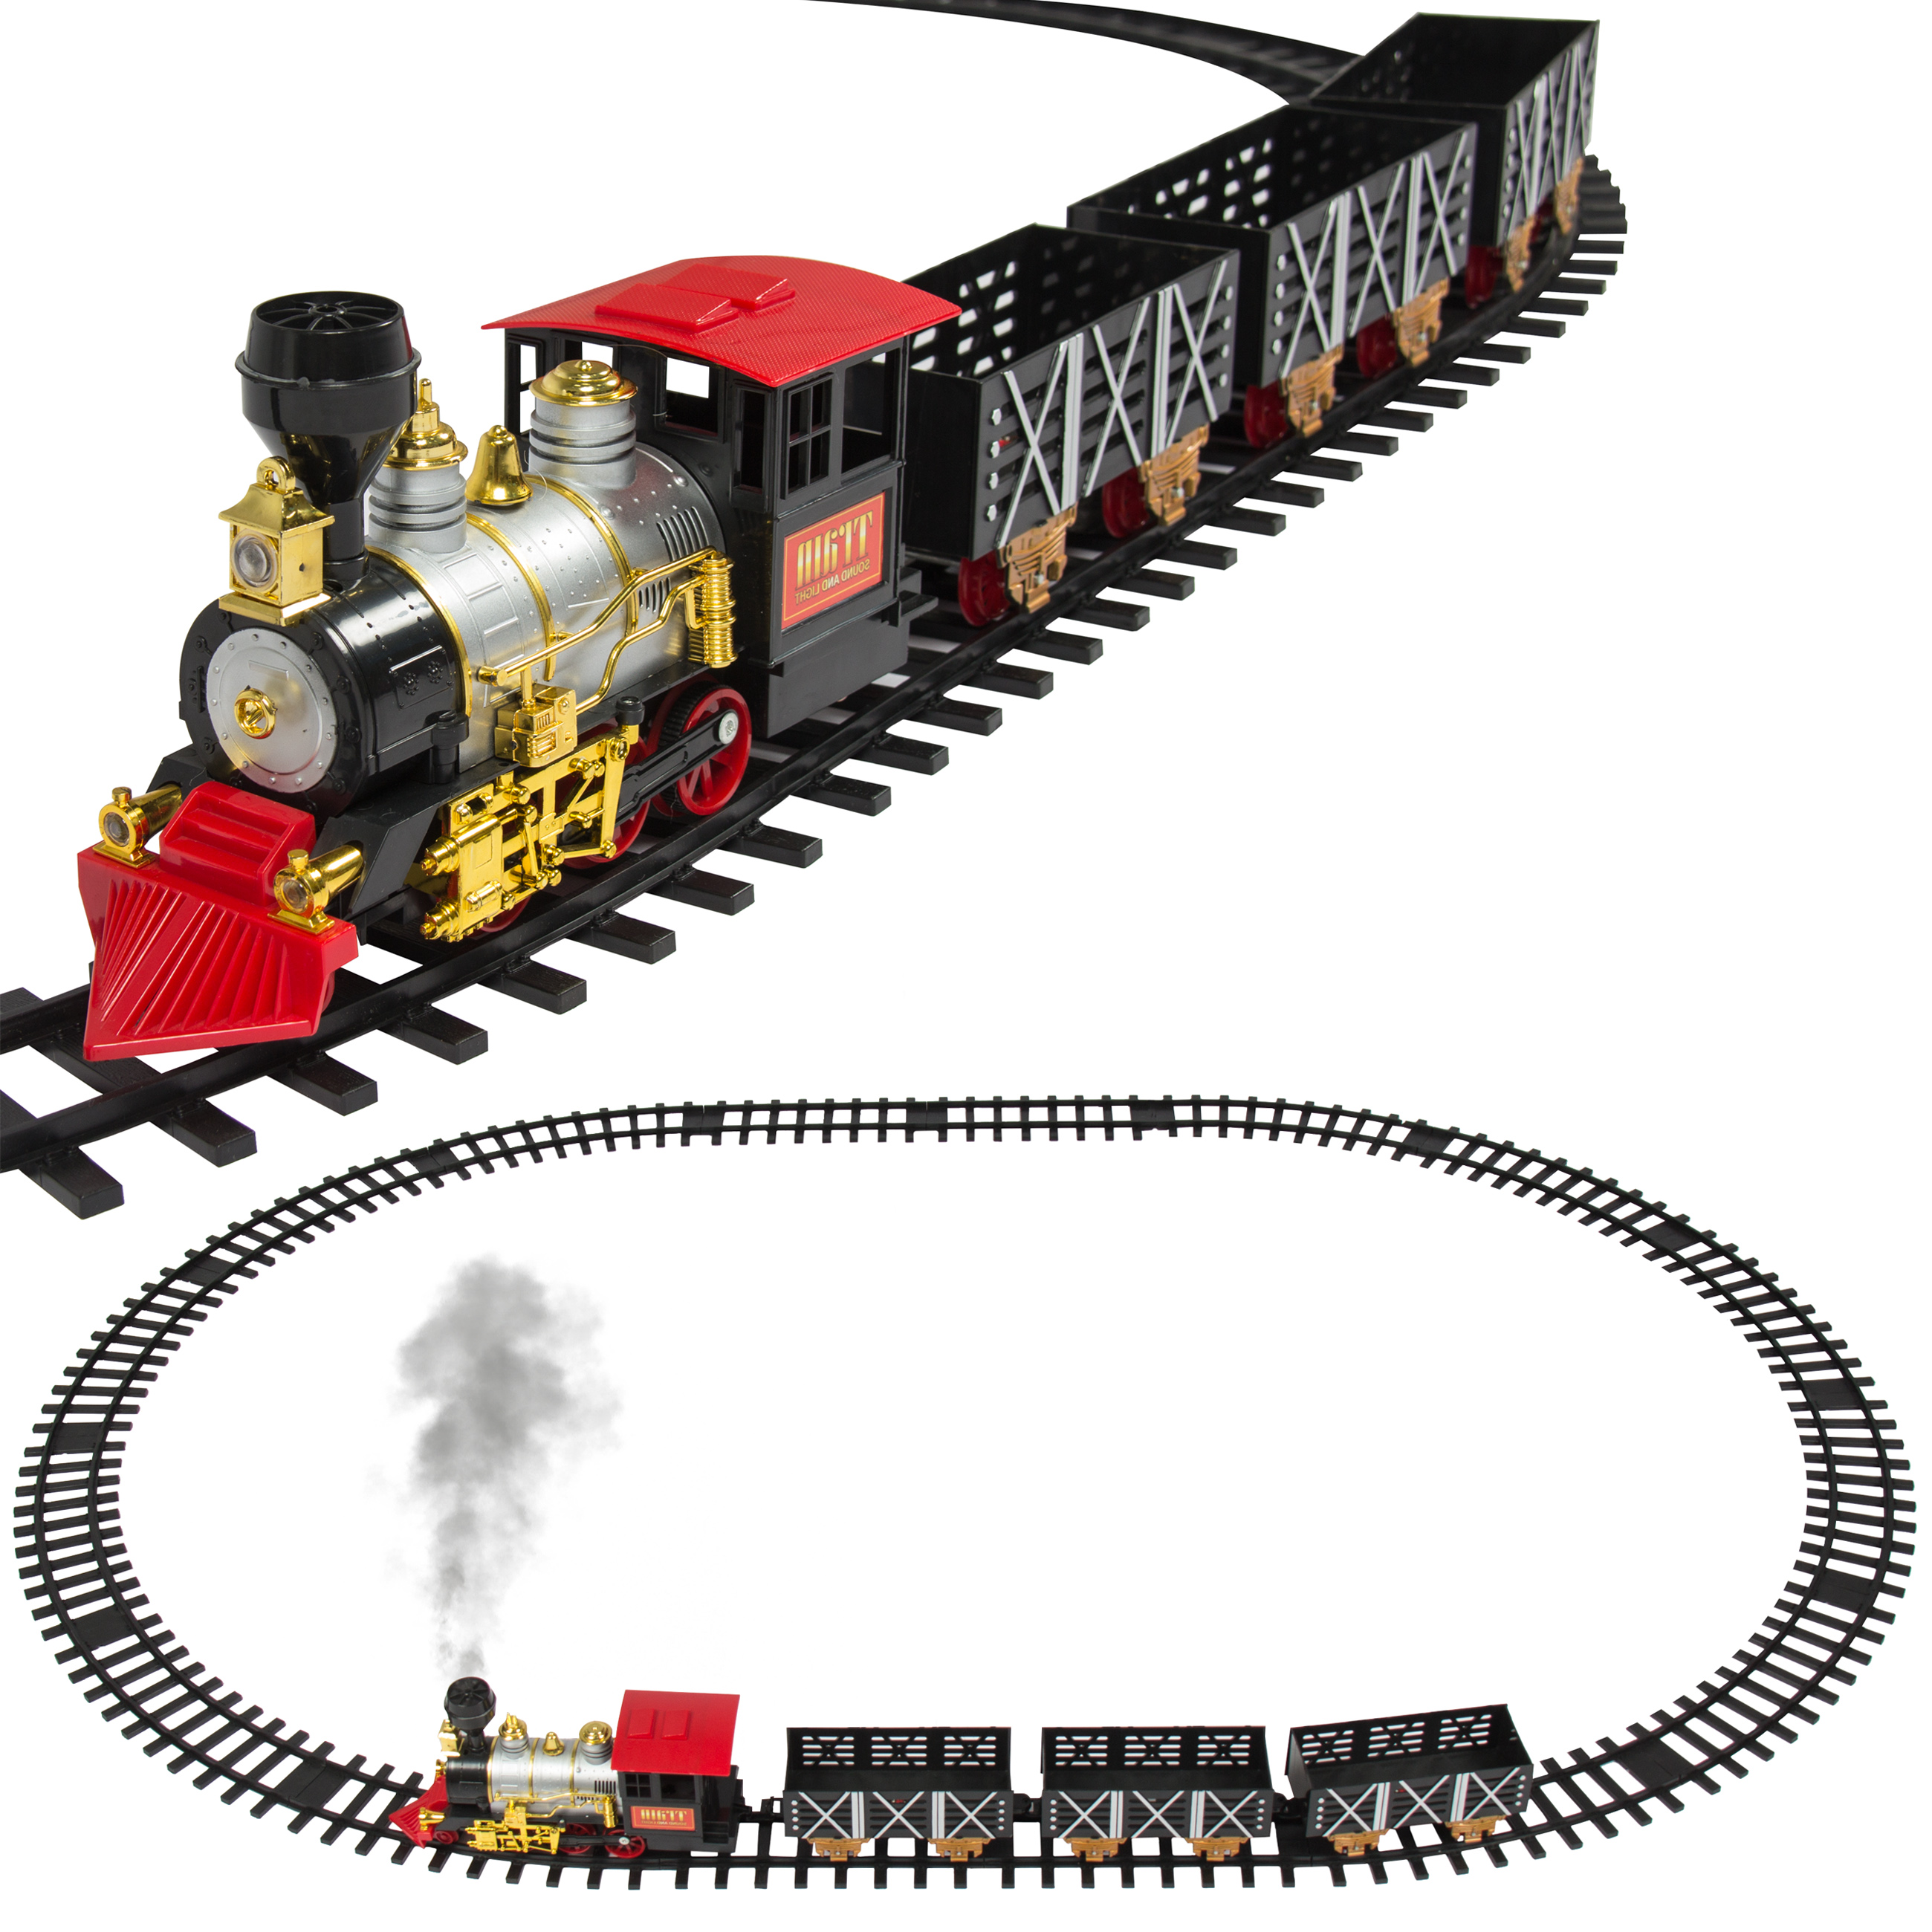 Best Choice Products Classic Train Set For Kids With Real Smoke Elenco Snap Circuits Lights Walmartcom Music And Battery Operated Railway Car